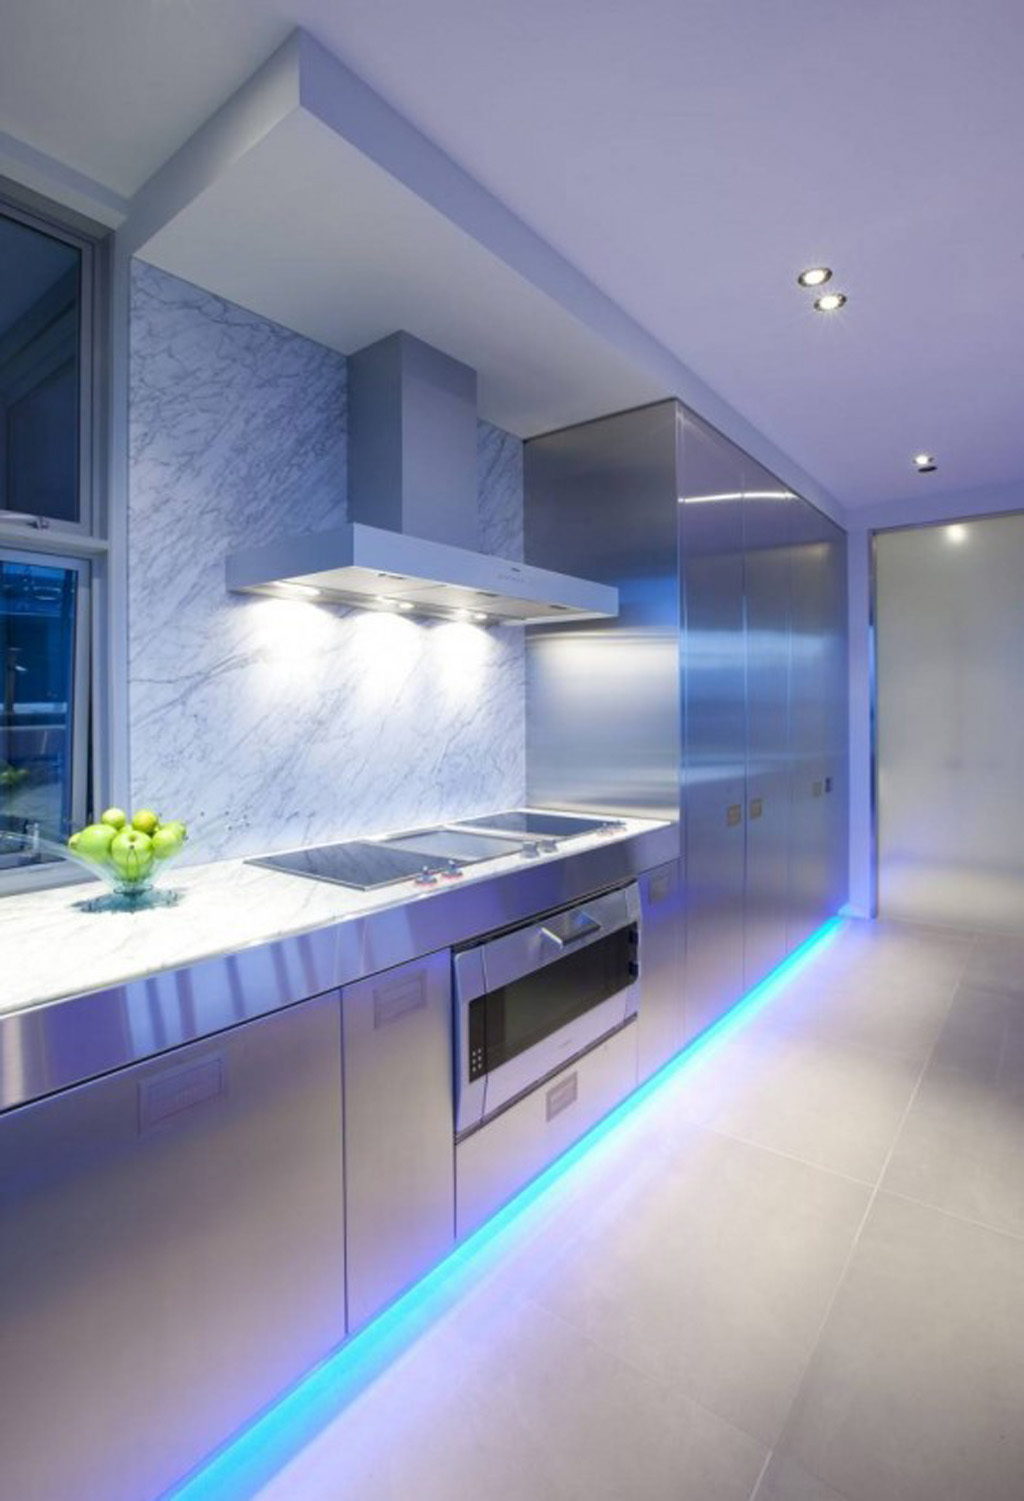 led ceiling lights kitchen photo - 2